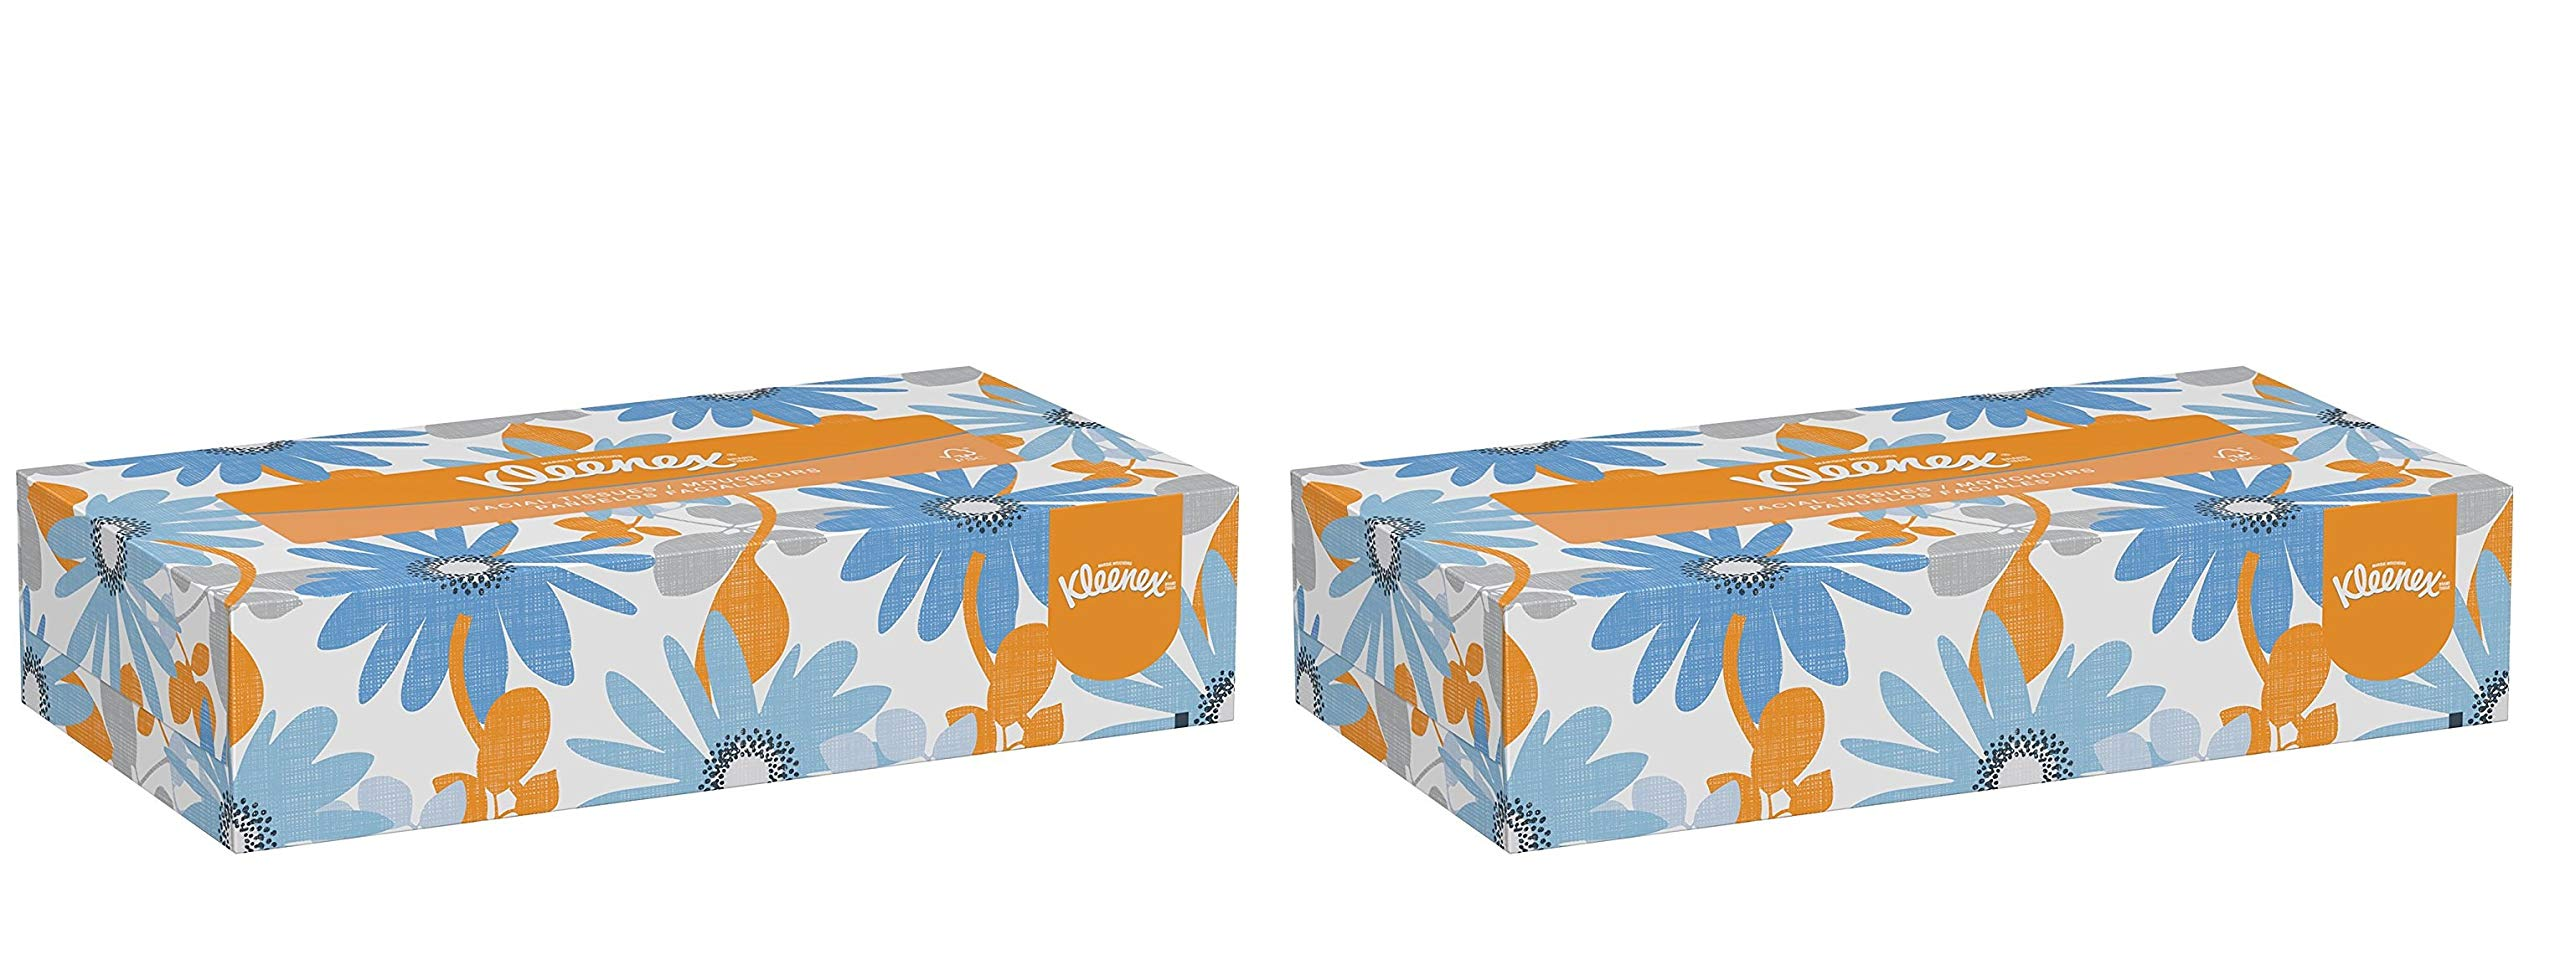 Kleenex Professional Facial Tissue for Business (21606) Flat Tissue Boxes, 2 Pack (1 case of 48)